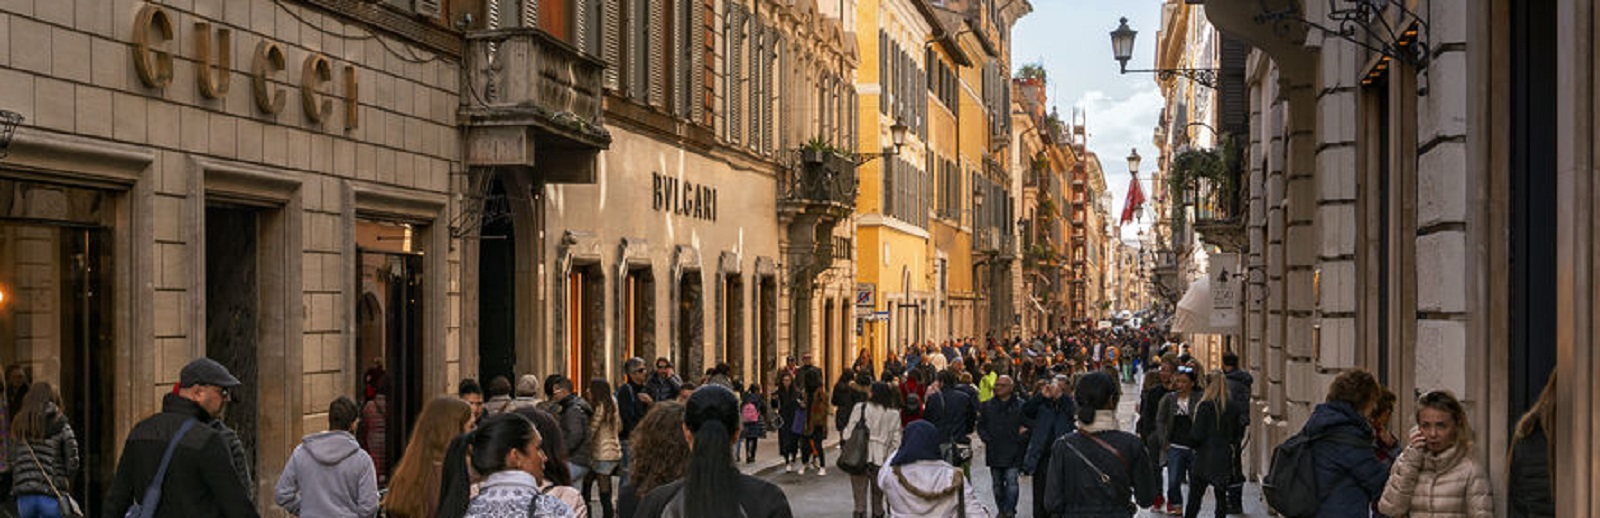 Rome, italy, february 2017: people walking along the elegant shopping avenue Via di Condotti in Rome, Italy